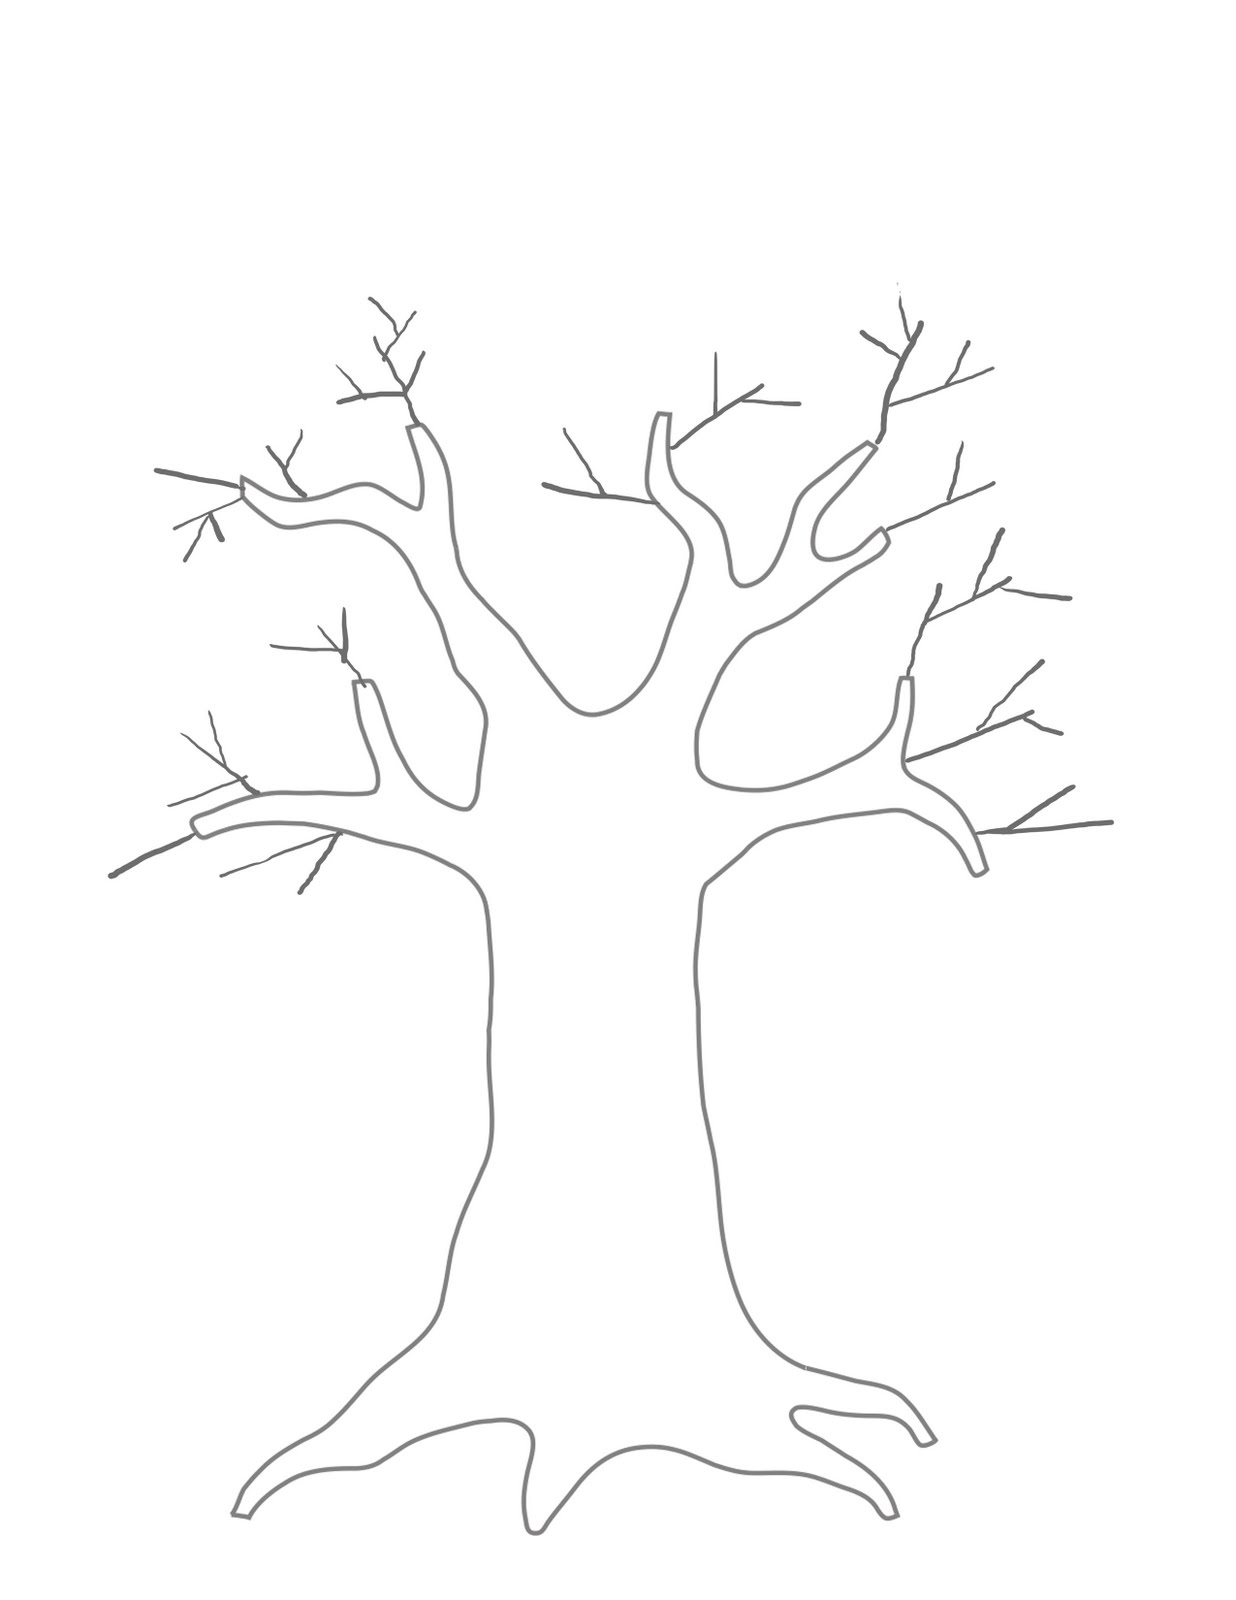 Free Tree Template, Download Free Clip Art, Free Clip Art